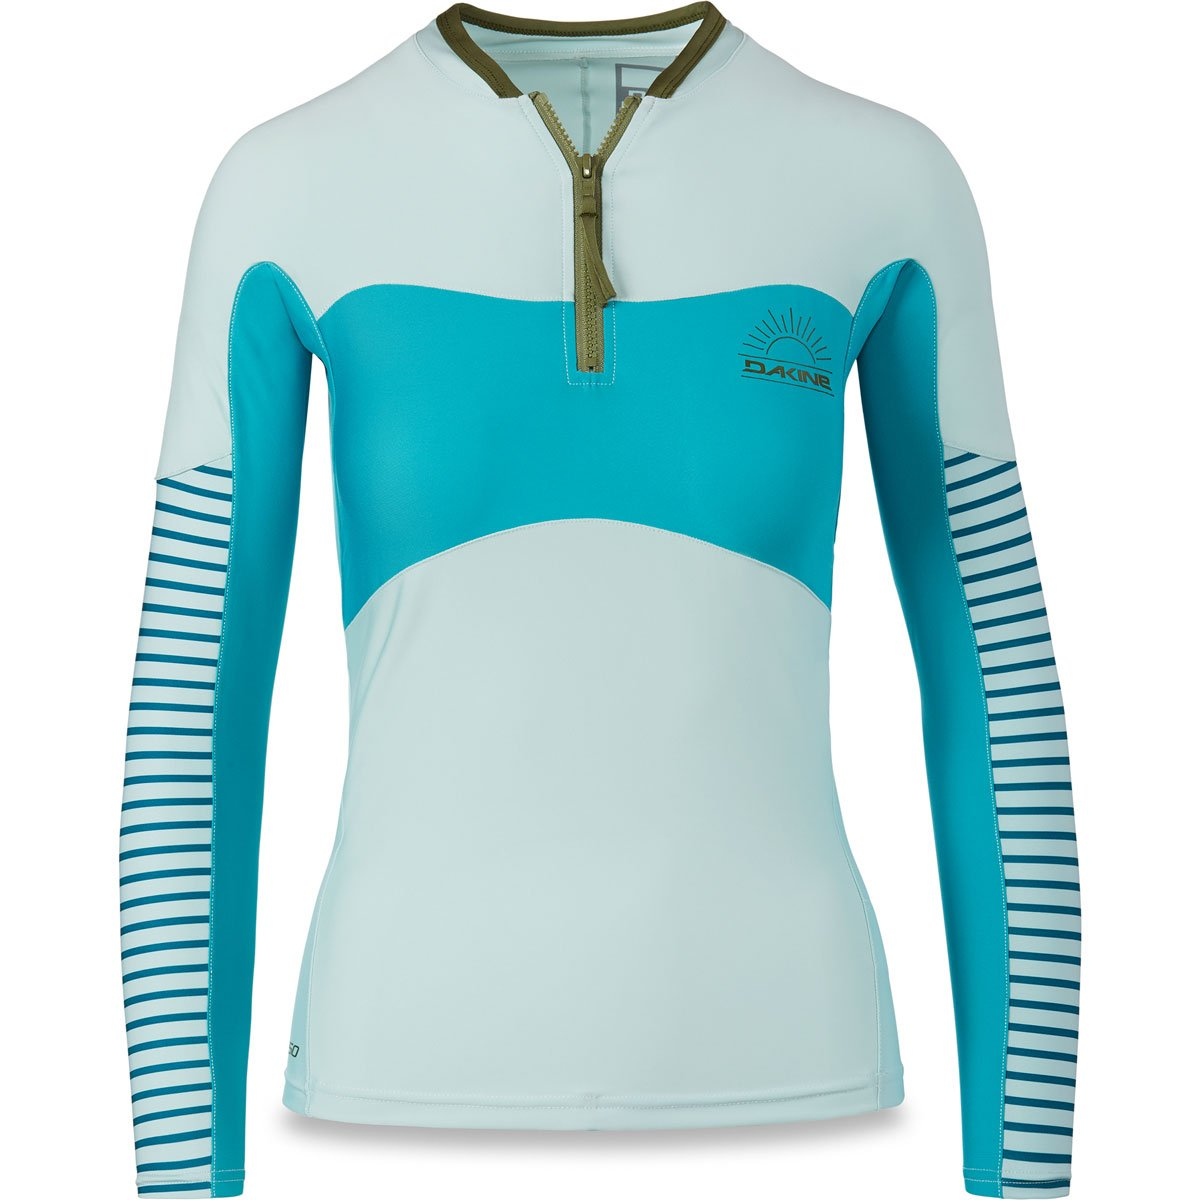 Dakine Women's Persuasive Snug Fit Long Sleeve Rashguard